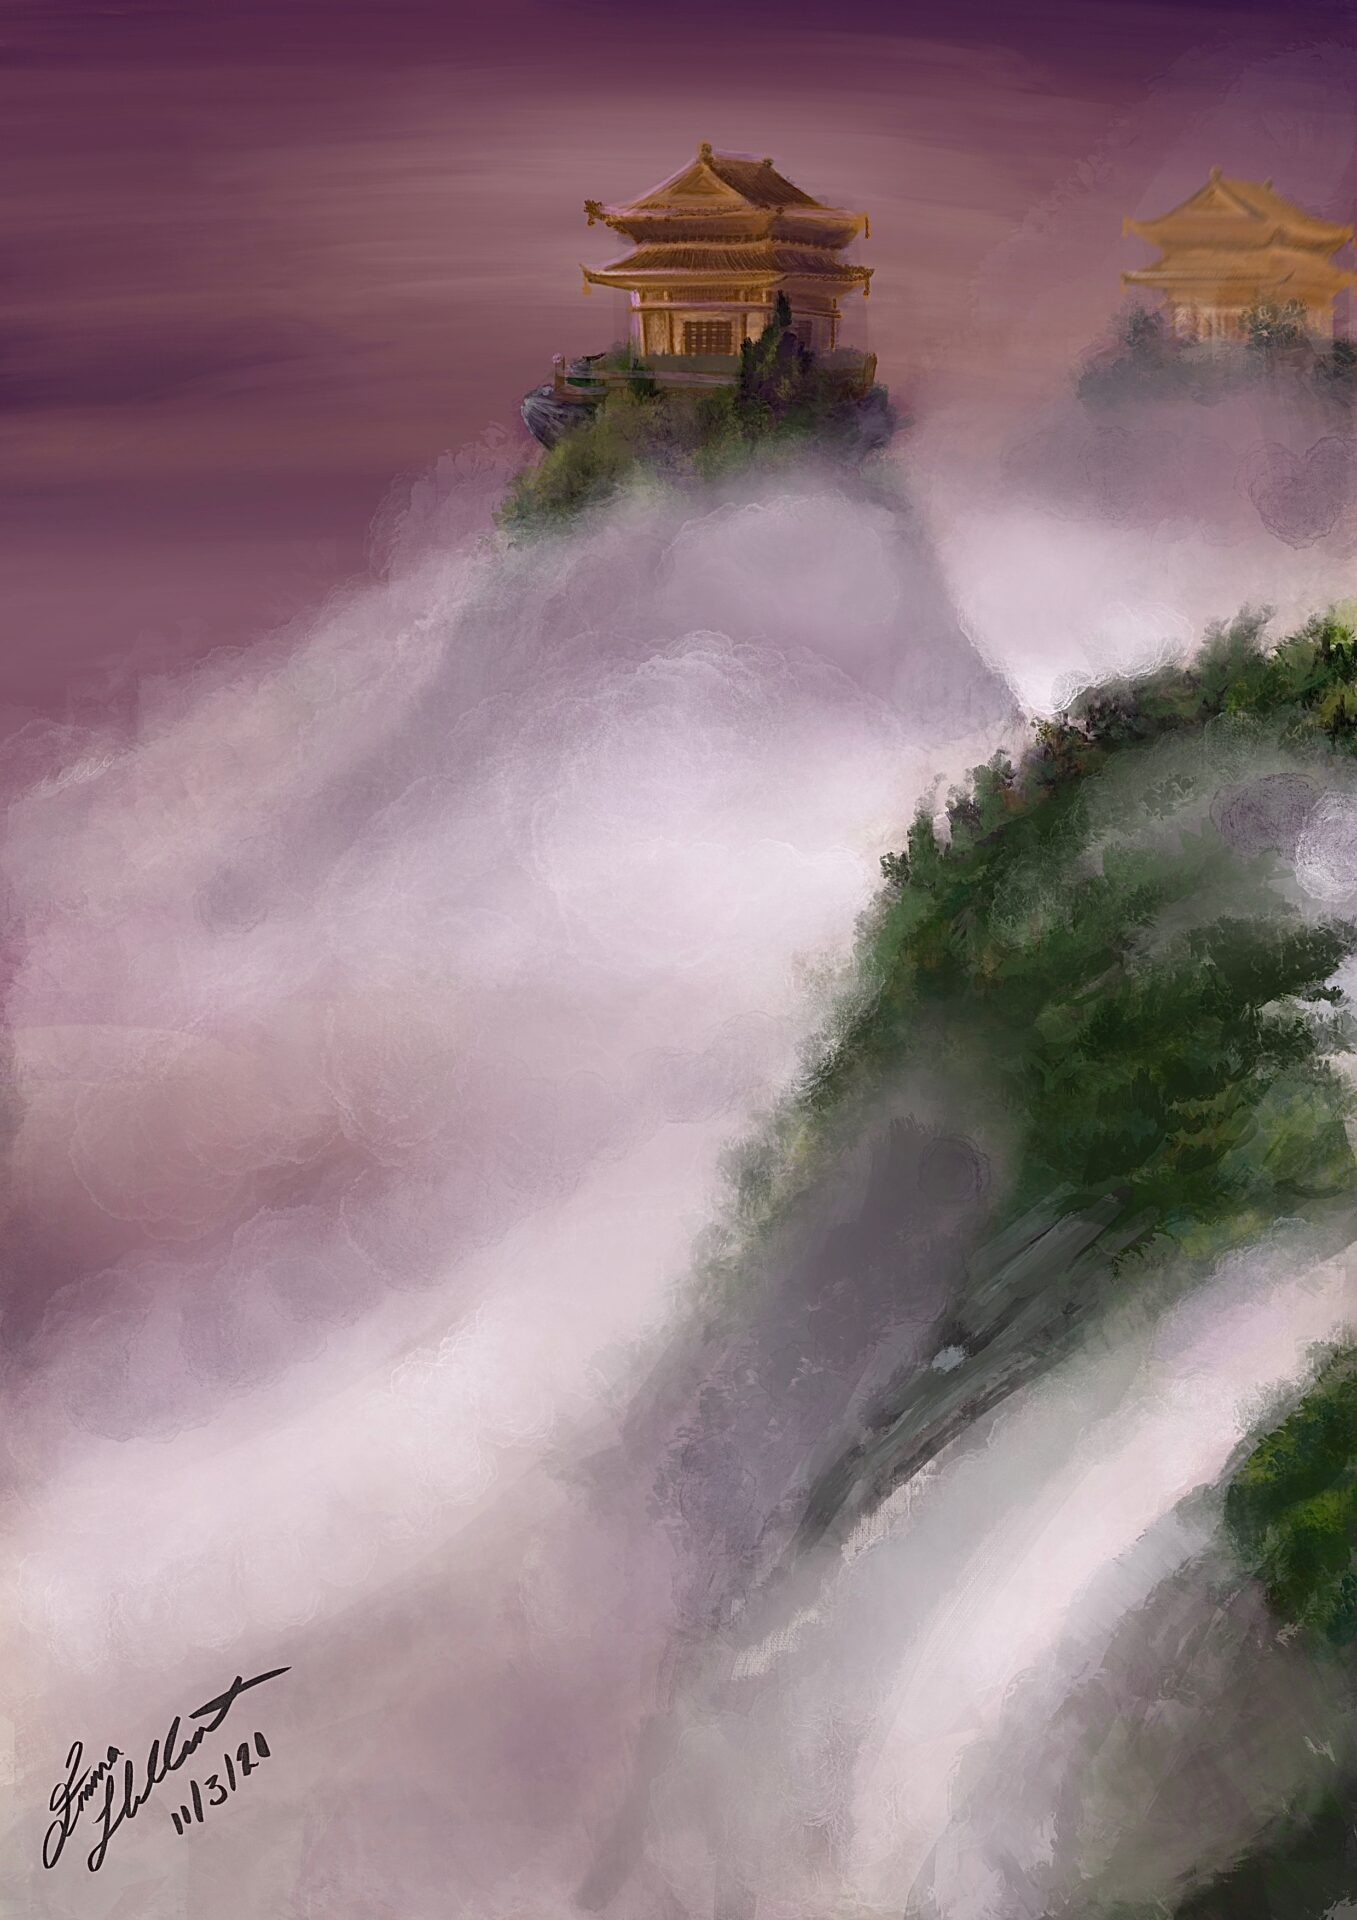 Emma has painted golden temples on top of very narrow hills. Between these green hills, mist and cloud flows.